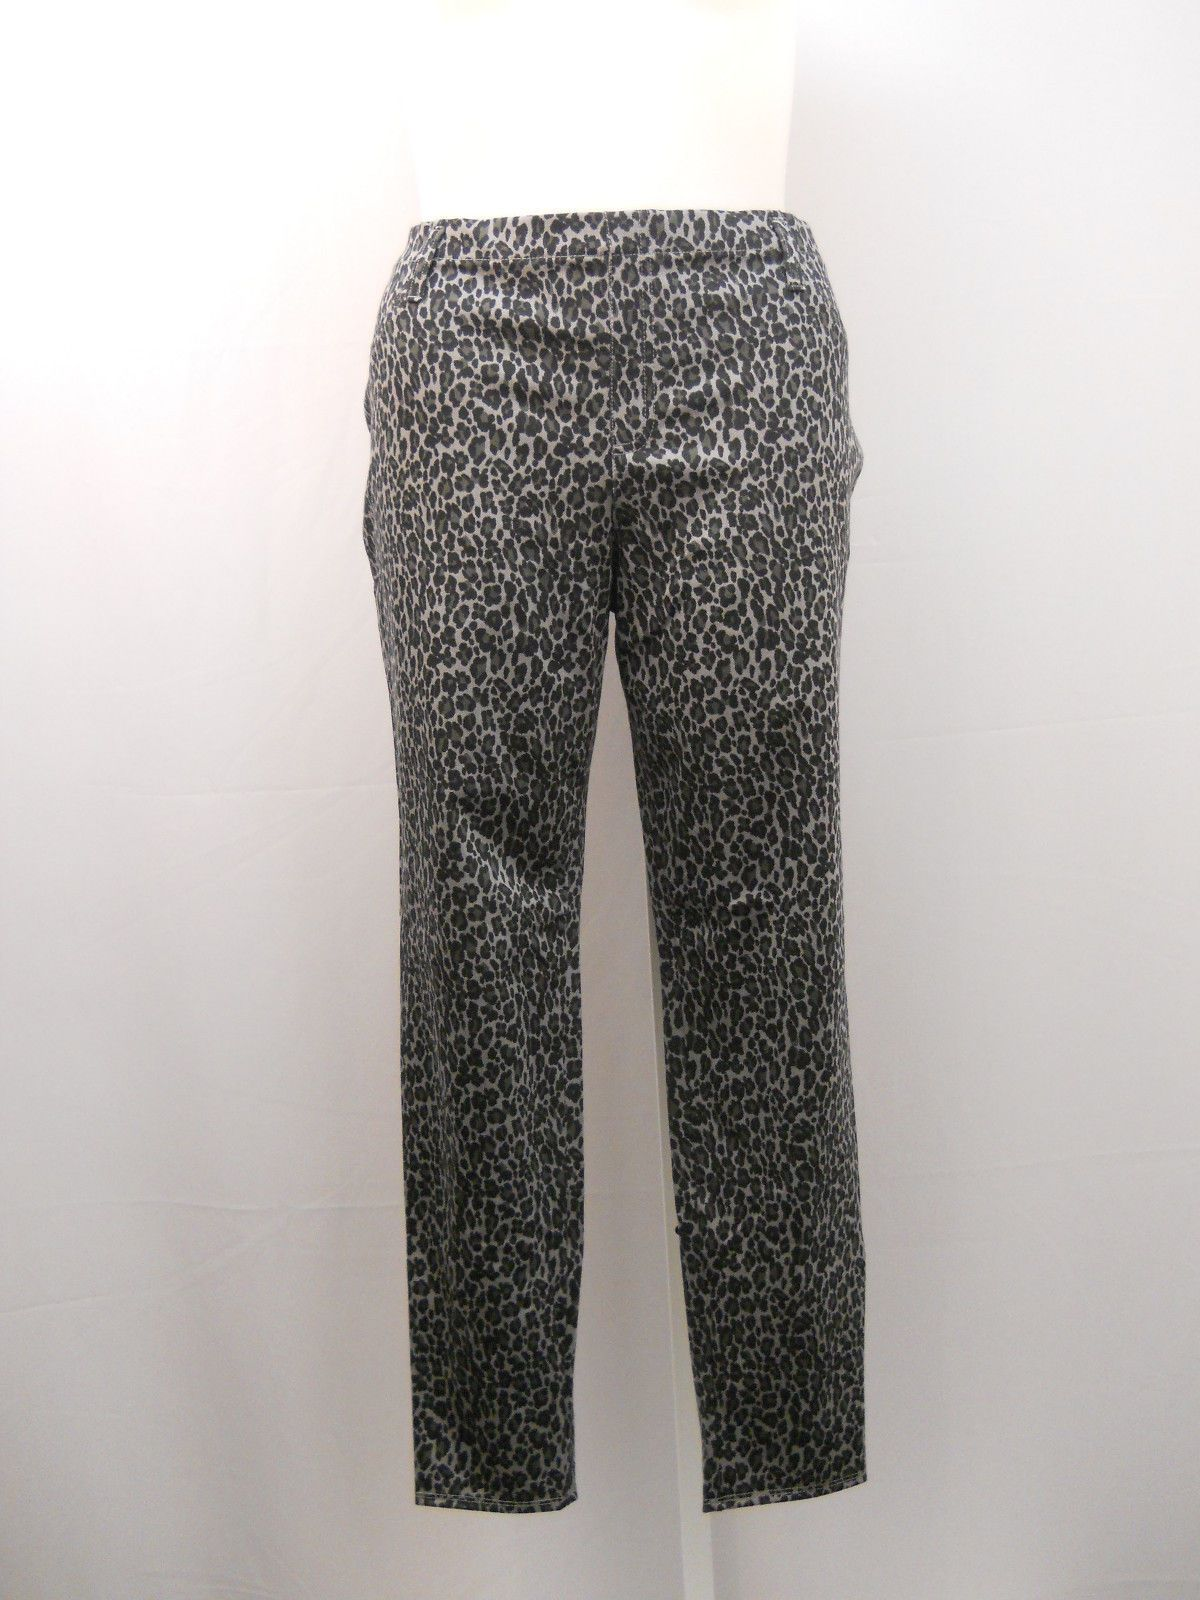 d39d25c4ce253 Faded Glory Woman's Jeggings Size 16-18 Animal Print Mid-Rise Skinny Legs  38X29 For Sale - Item #1628858